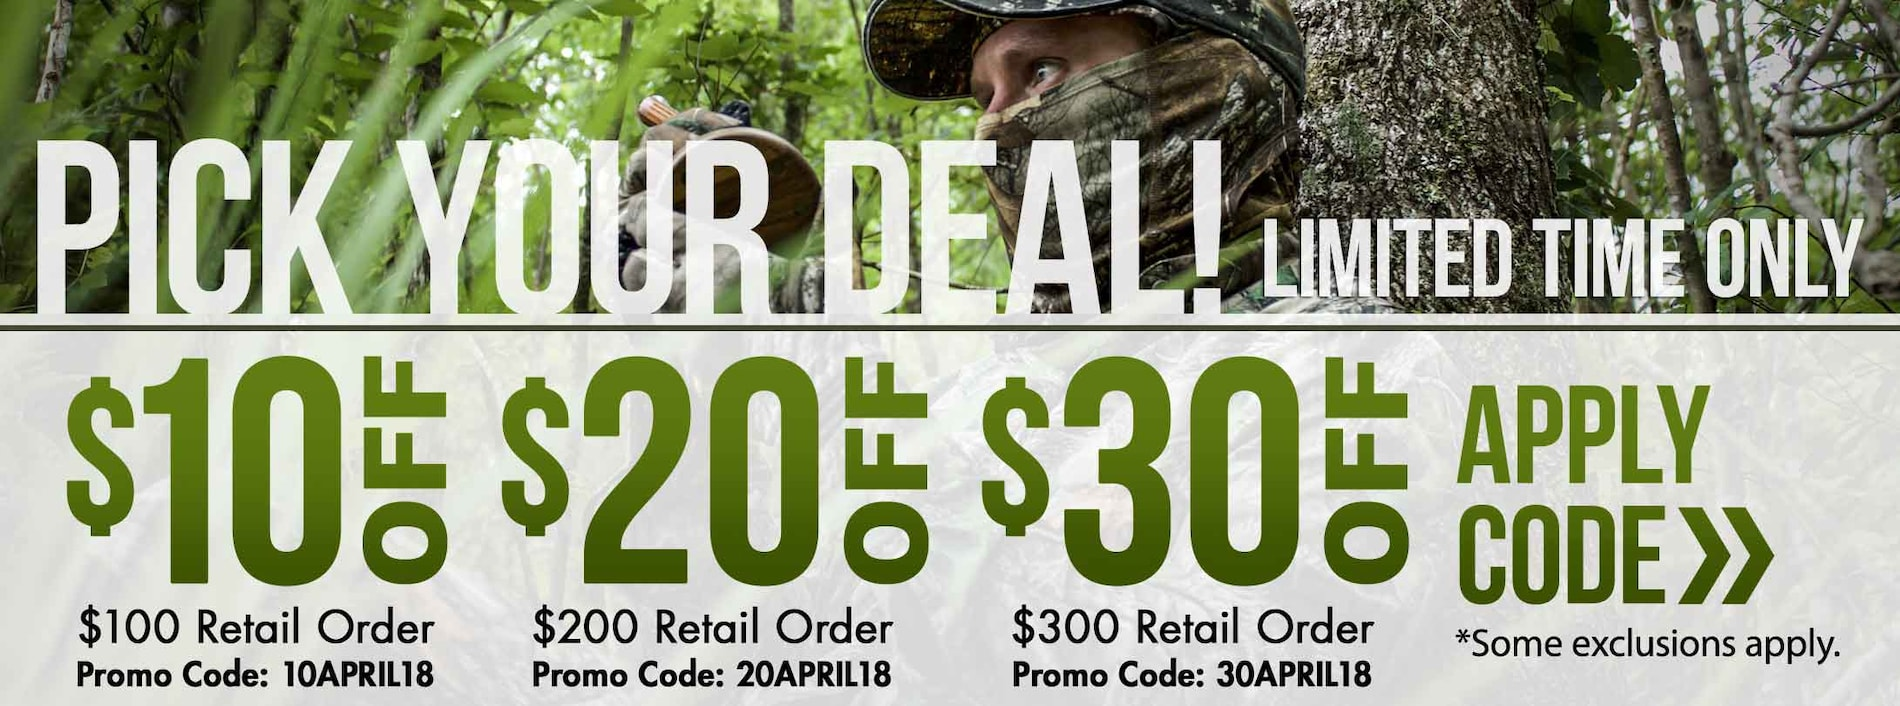 Up to $30 Off Your Order with Promo Code